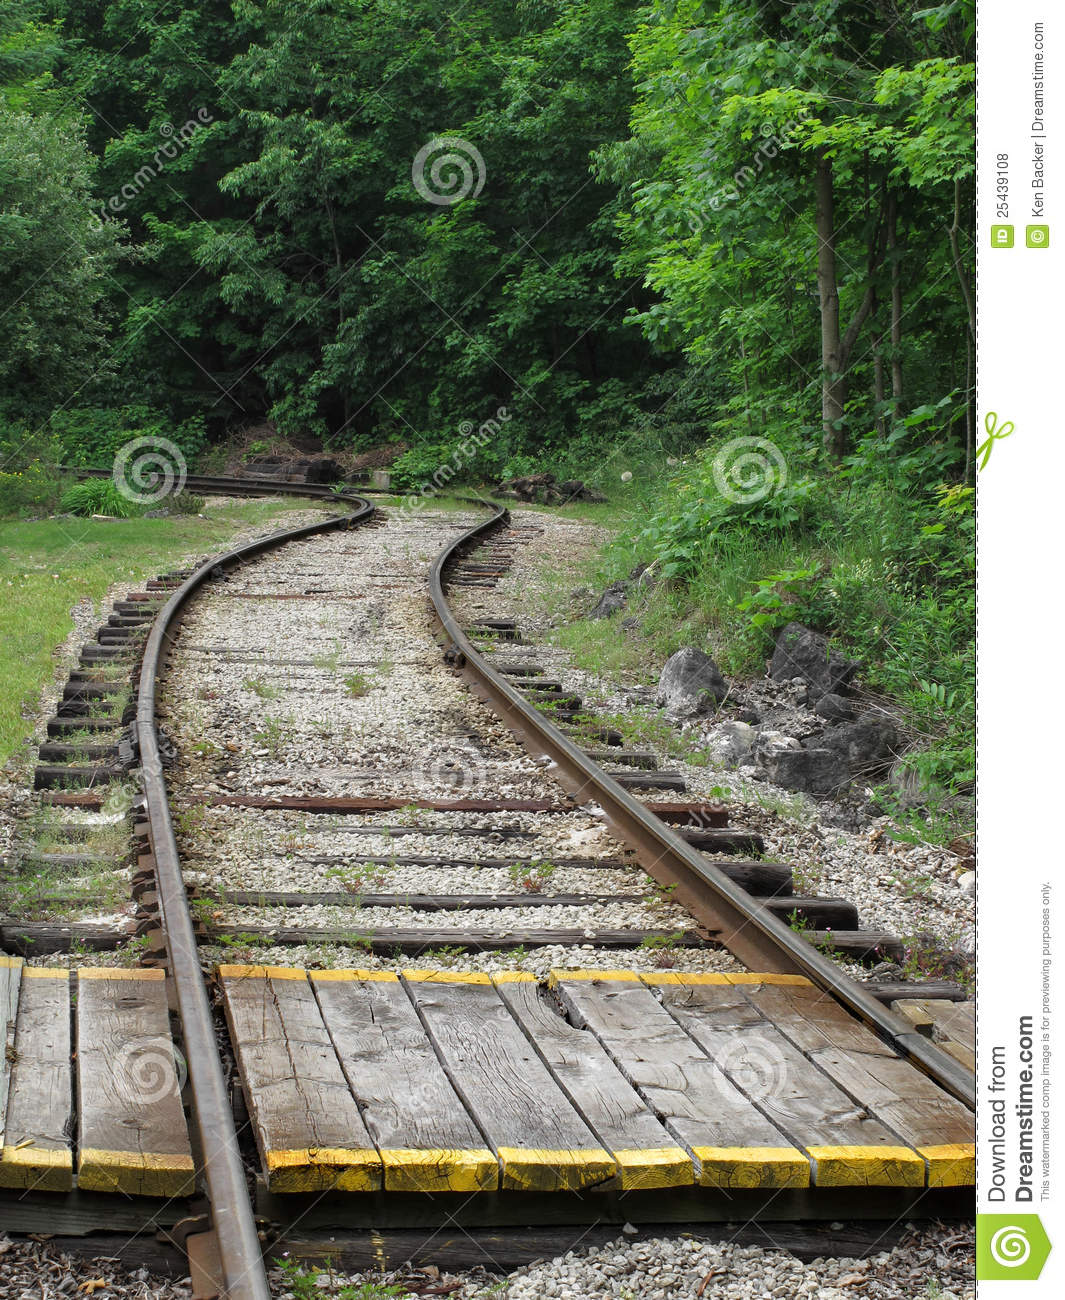 Wooden Crossing Over Railroad Tracks Stock Photo - Image of